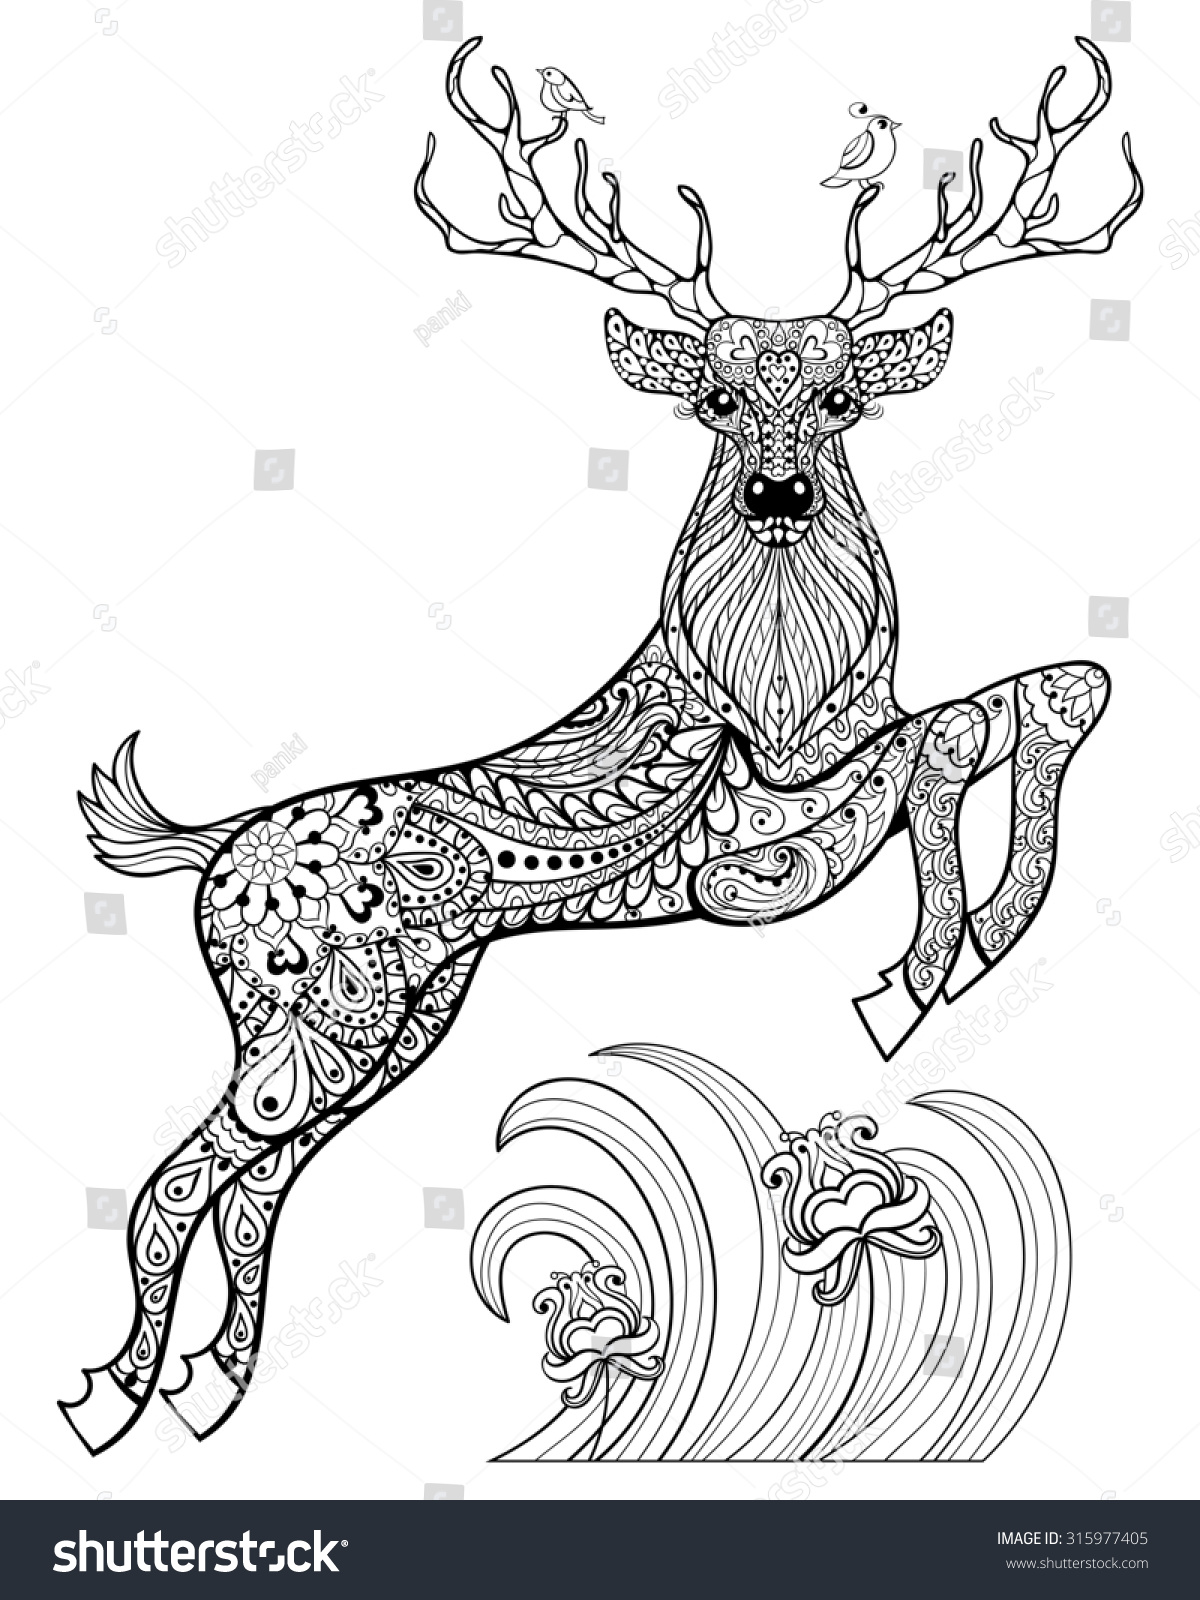 Hand drawn magic horned deer birds stock illustration for Deer coloring pages